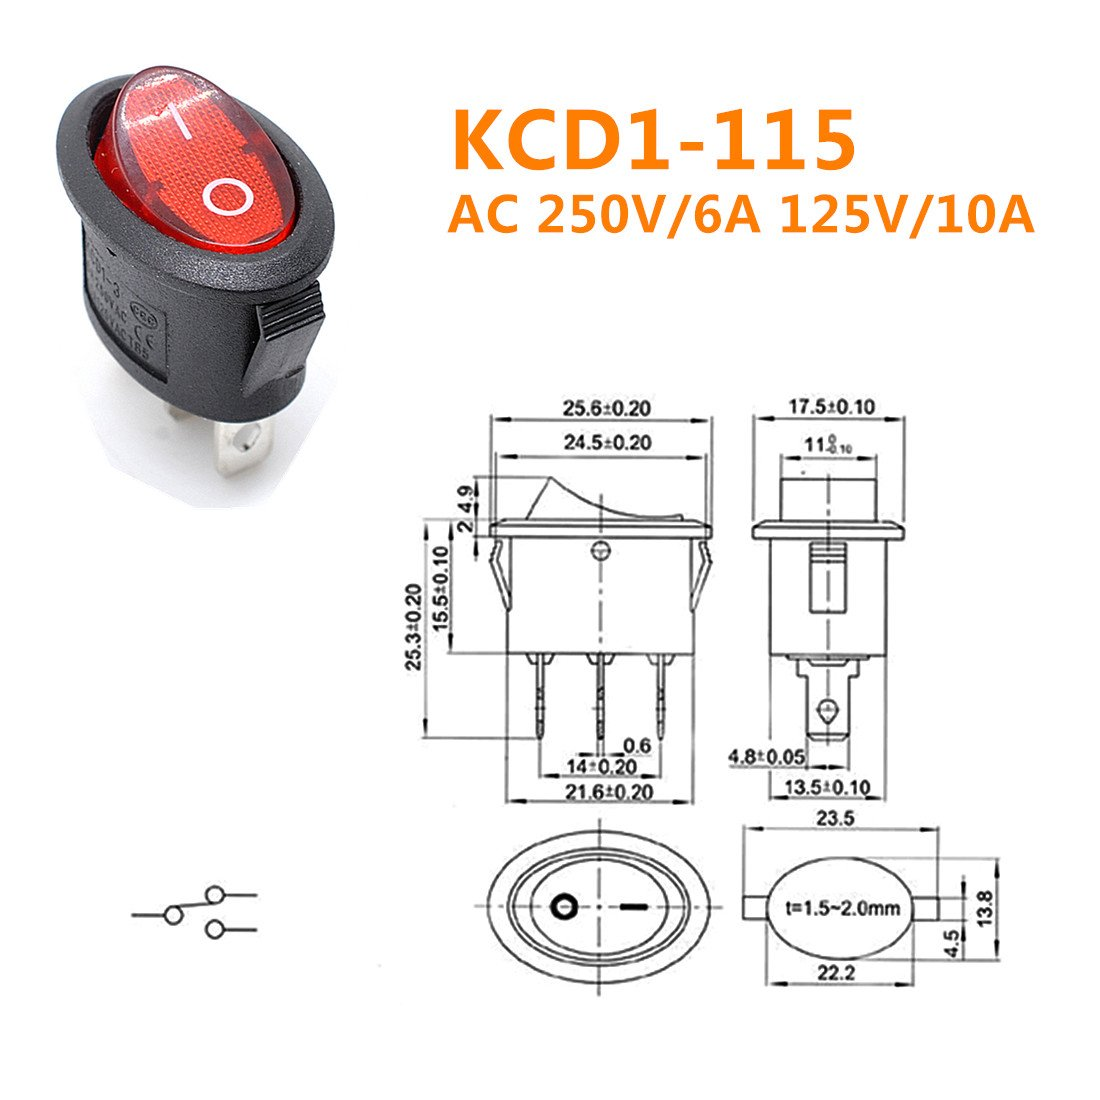 Willwin 15pcs Kcd1 115 Oval Red Lamp 3 Pins Spst Boat For Wiring Toggle Diagrams Switch 5 Rocker Ac 250v 6a 125v 10a Computers Accessories